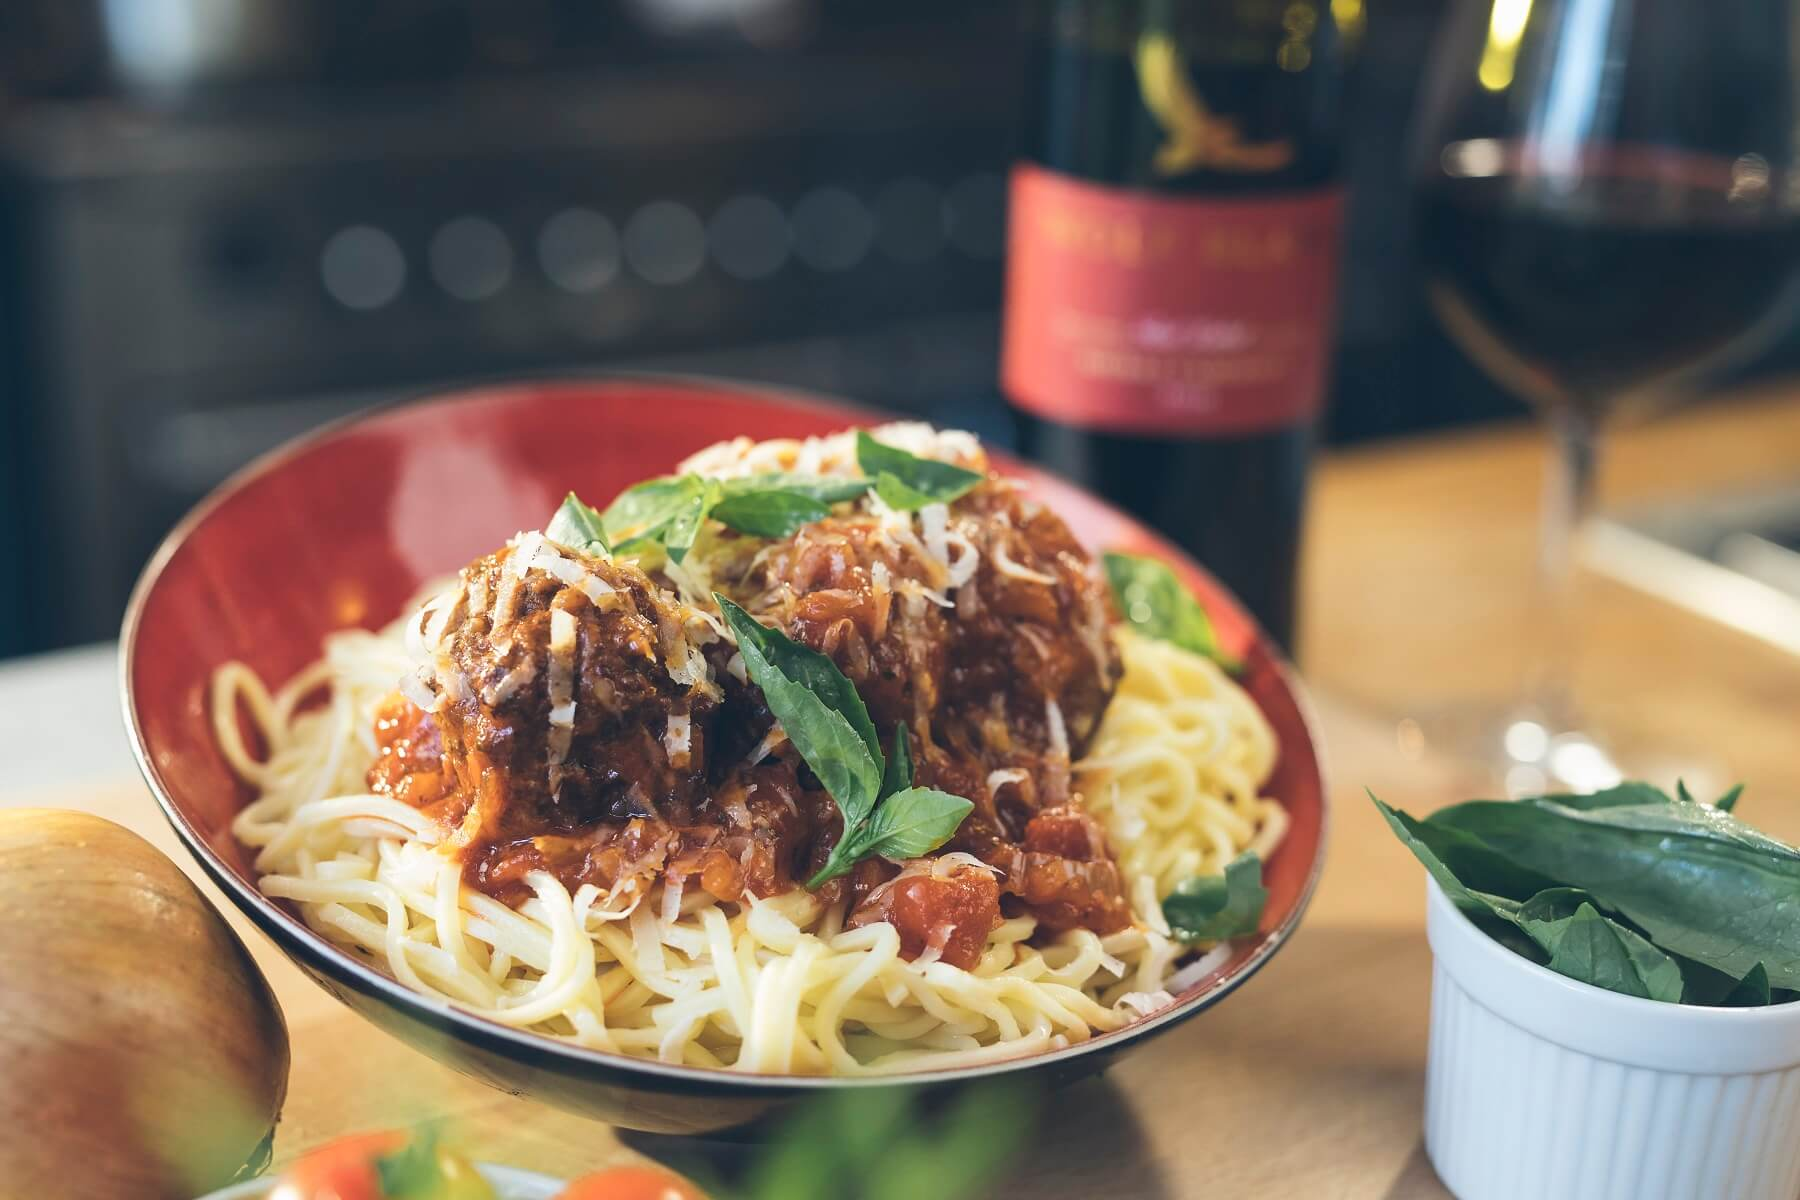 Meatballs with parmesan and spaghetti